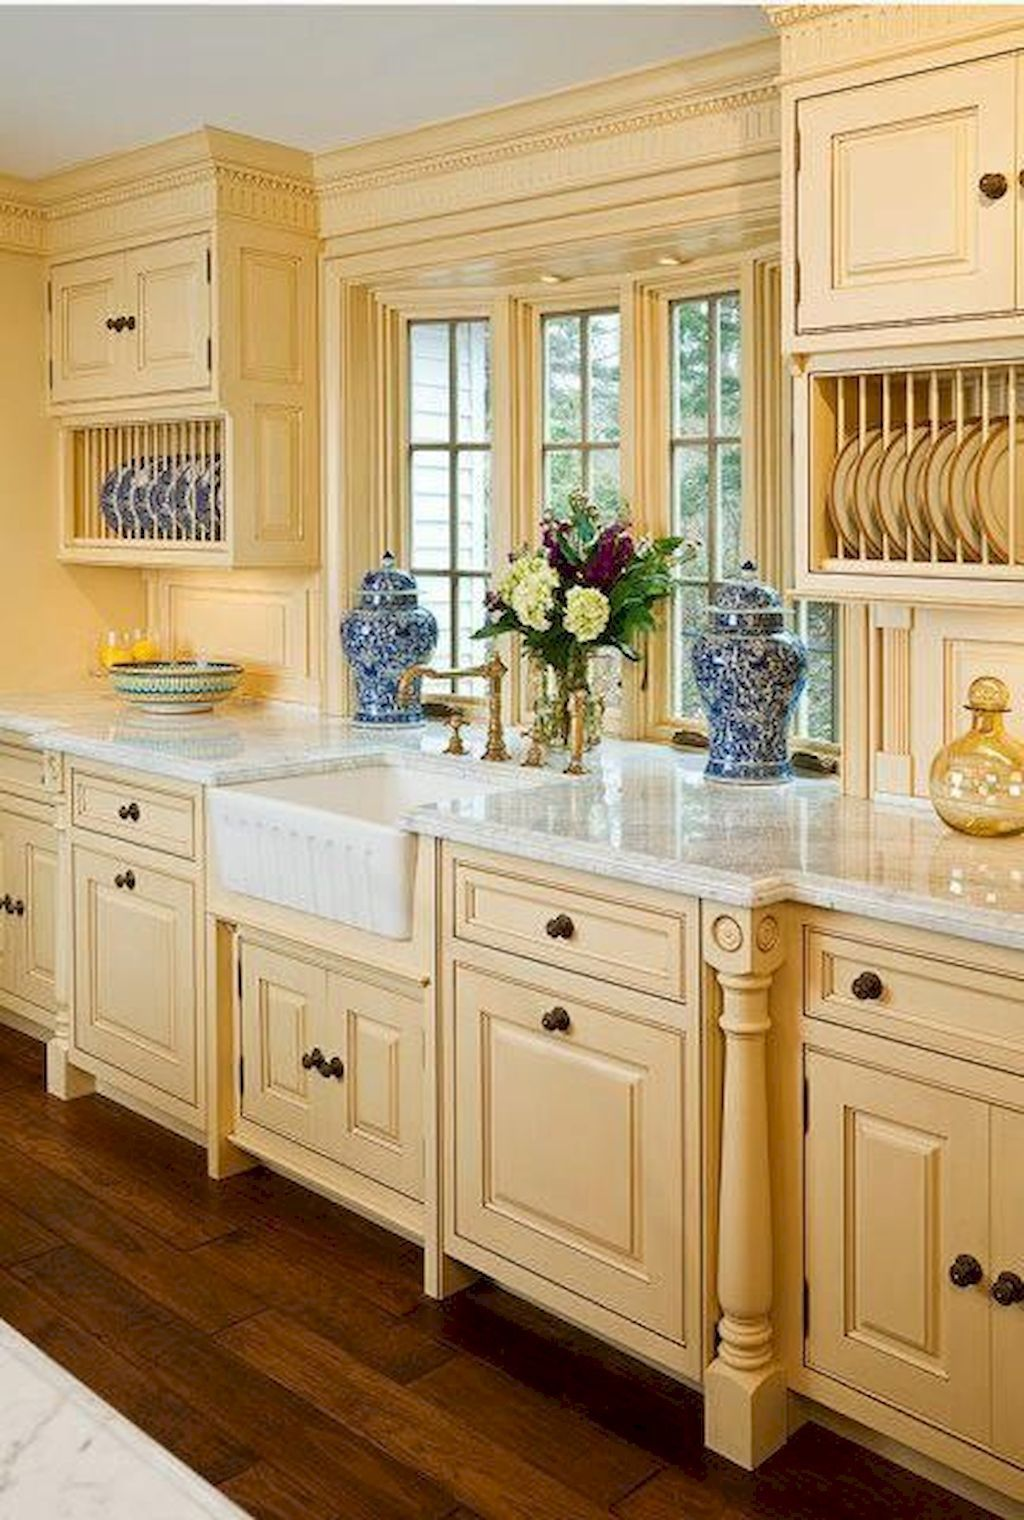 62 Incredible French Country Kitchen Design Ideas